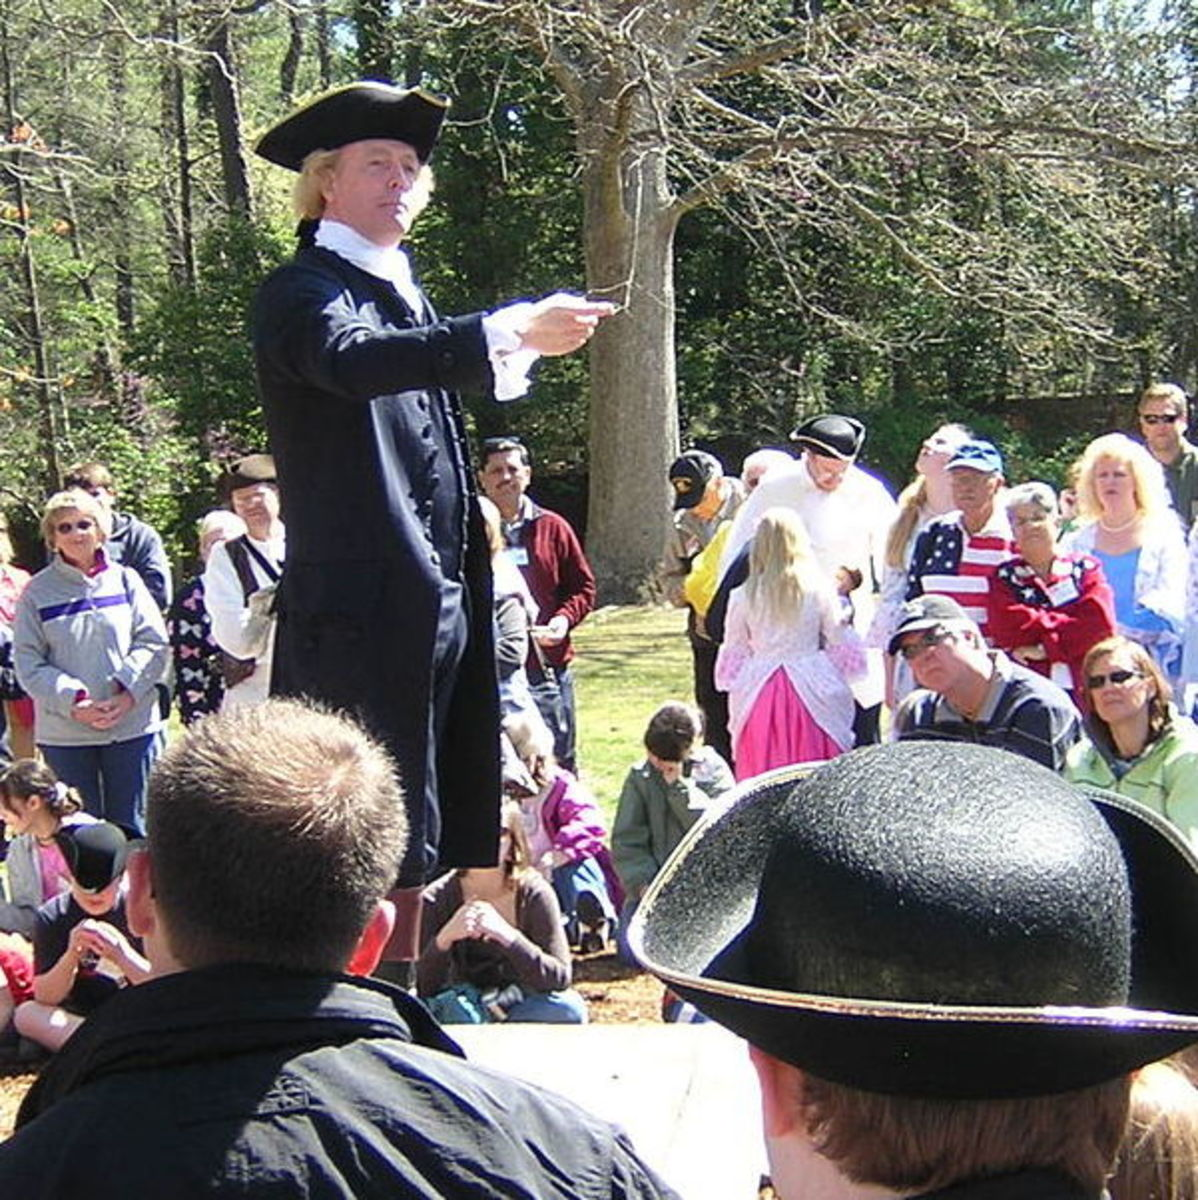 Thomas Jefferson Reenactment in Colonial Williamsburg by Larry Pieniazek